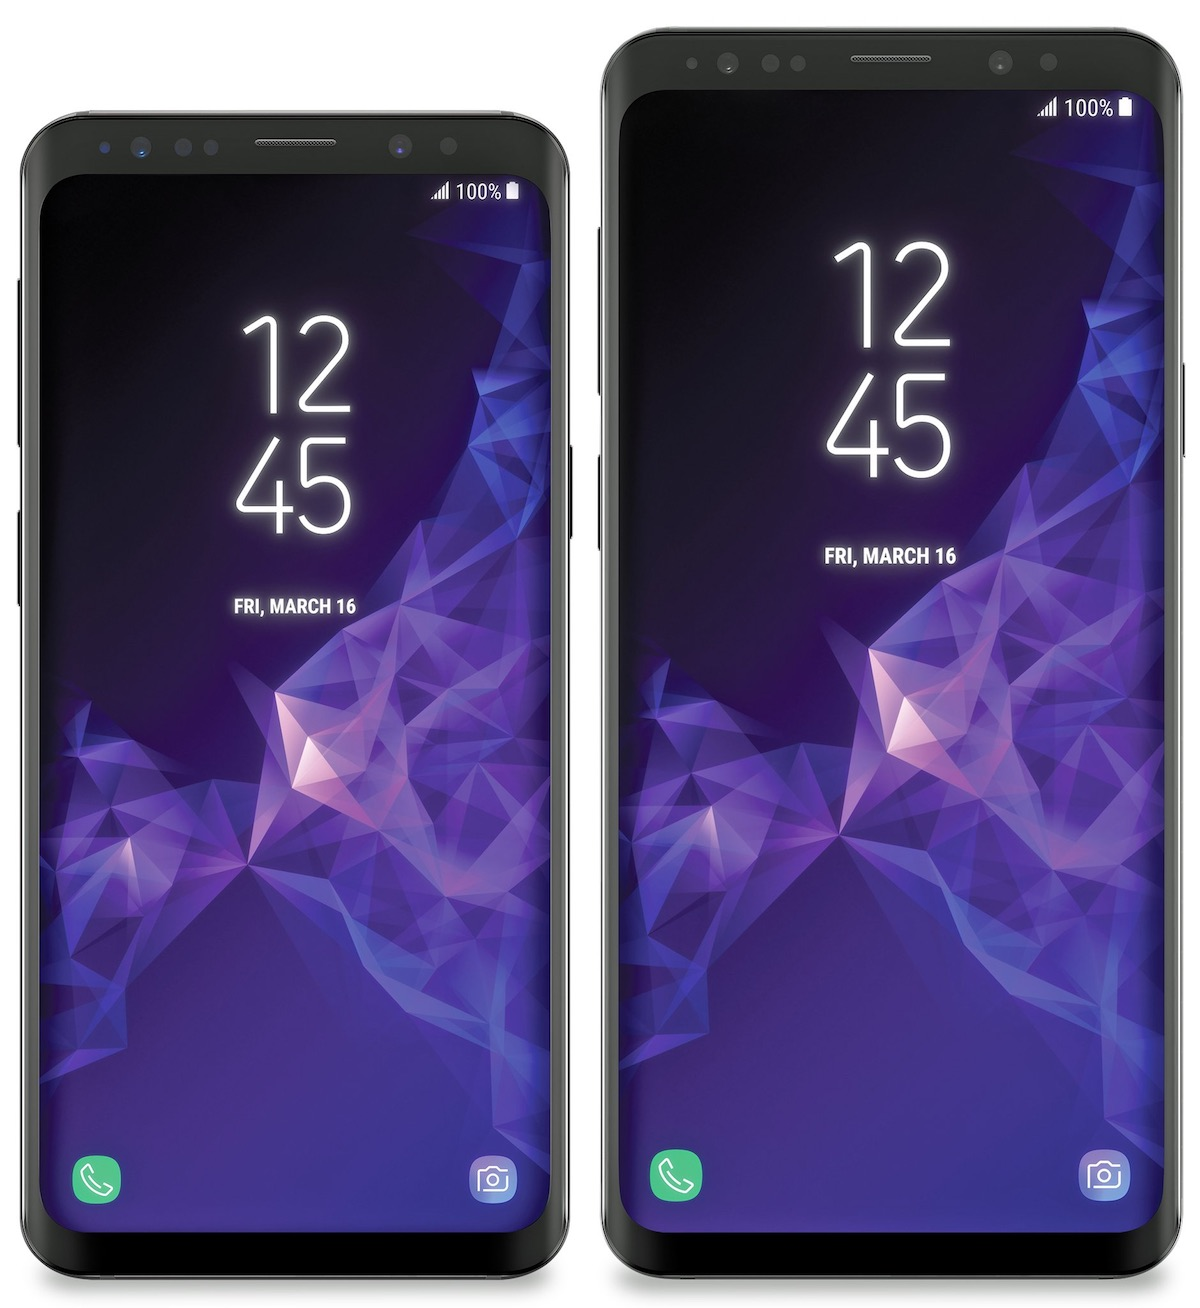 Samsung Galaxy S9 & S9 Plus Model Number (SM-G960* and SM-G965